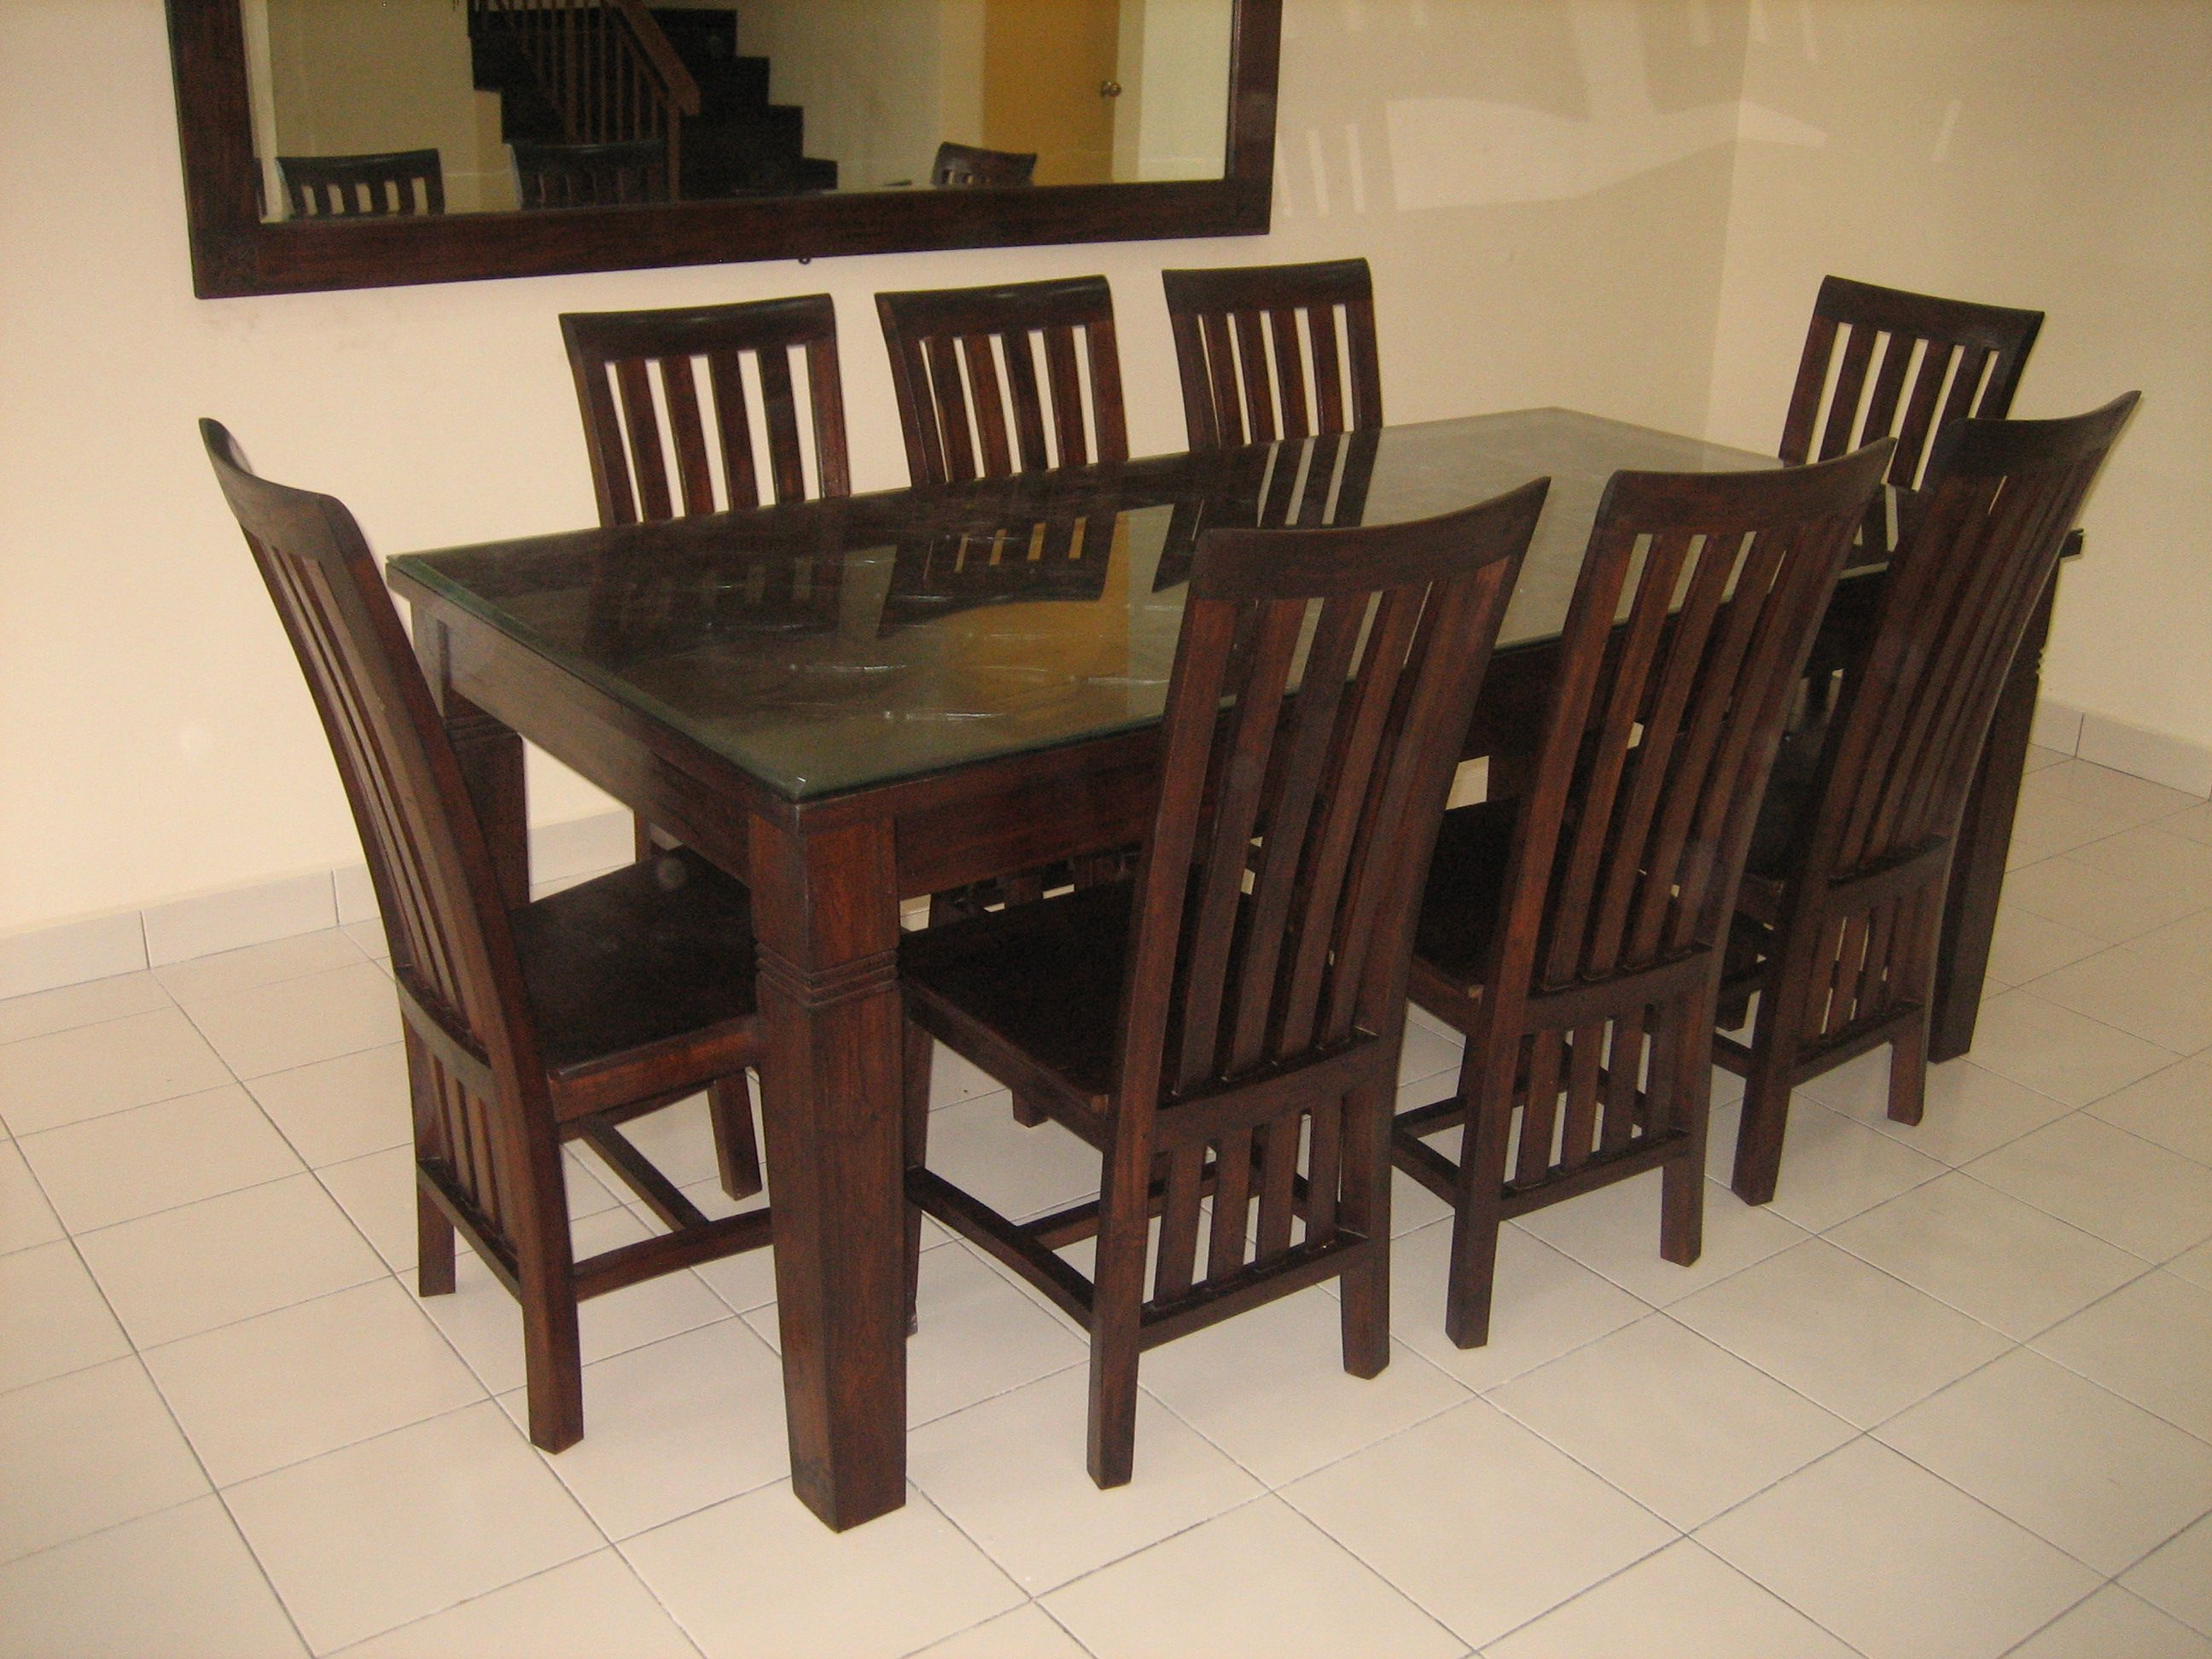 Used Dining Room Chairs Interior Design Interior Design Dining Room Vintage Dining Table Dining Chairs For Sale